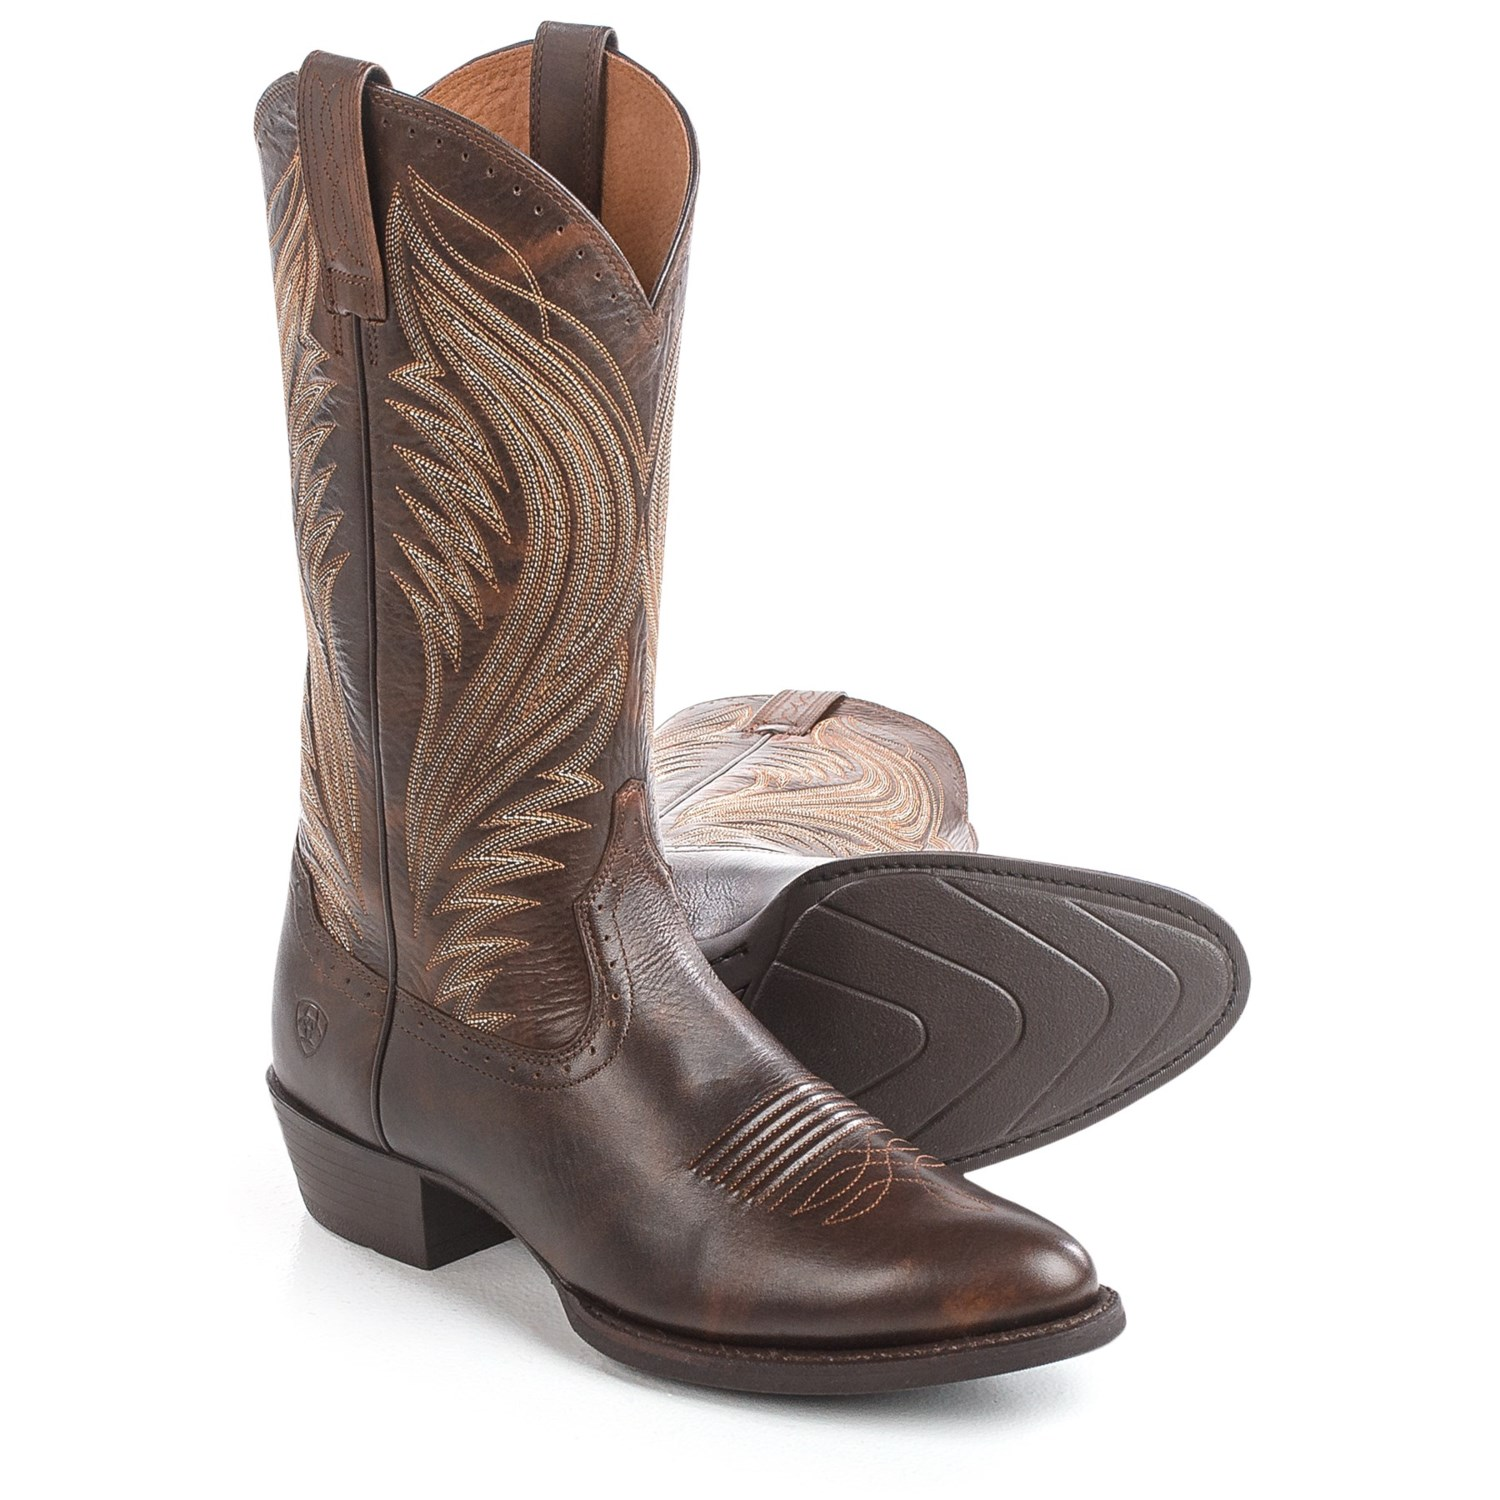 472fc07a7b1 Ariat cowboy boots for men : Best buy appliances clearance